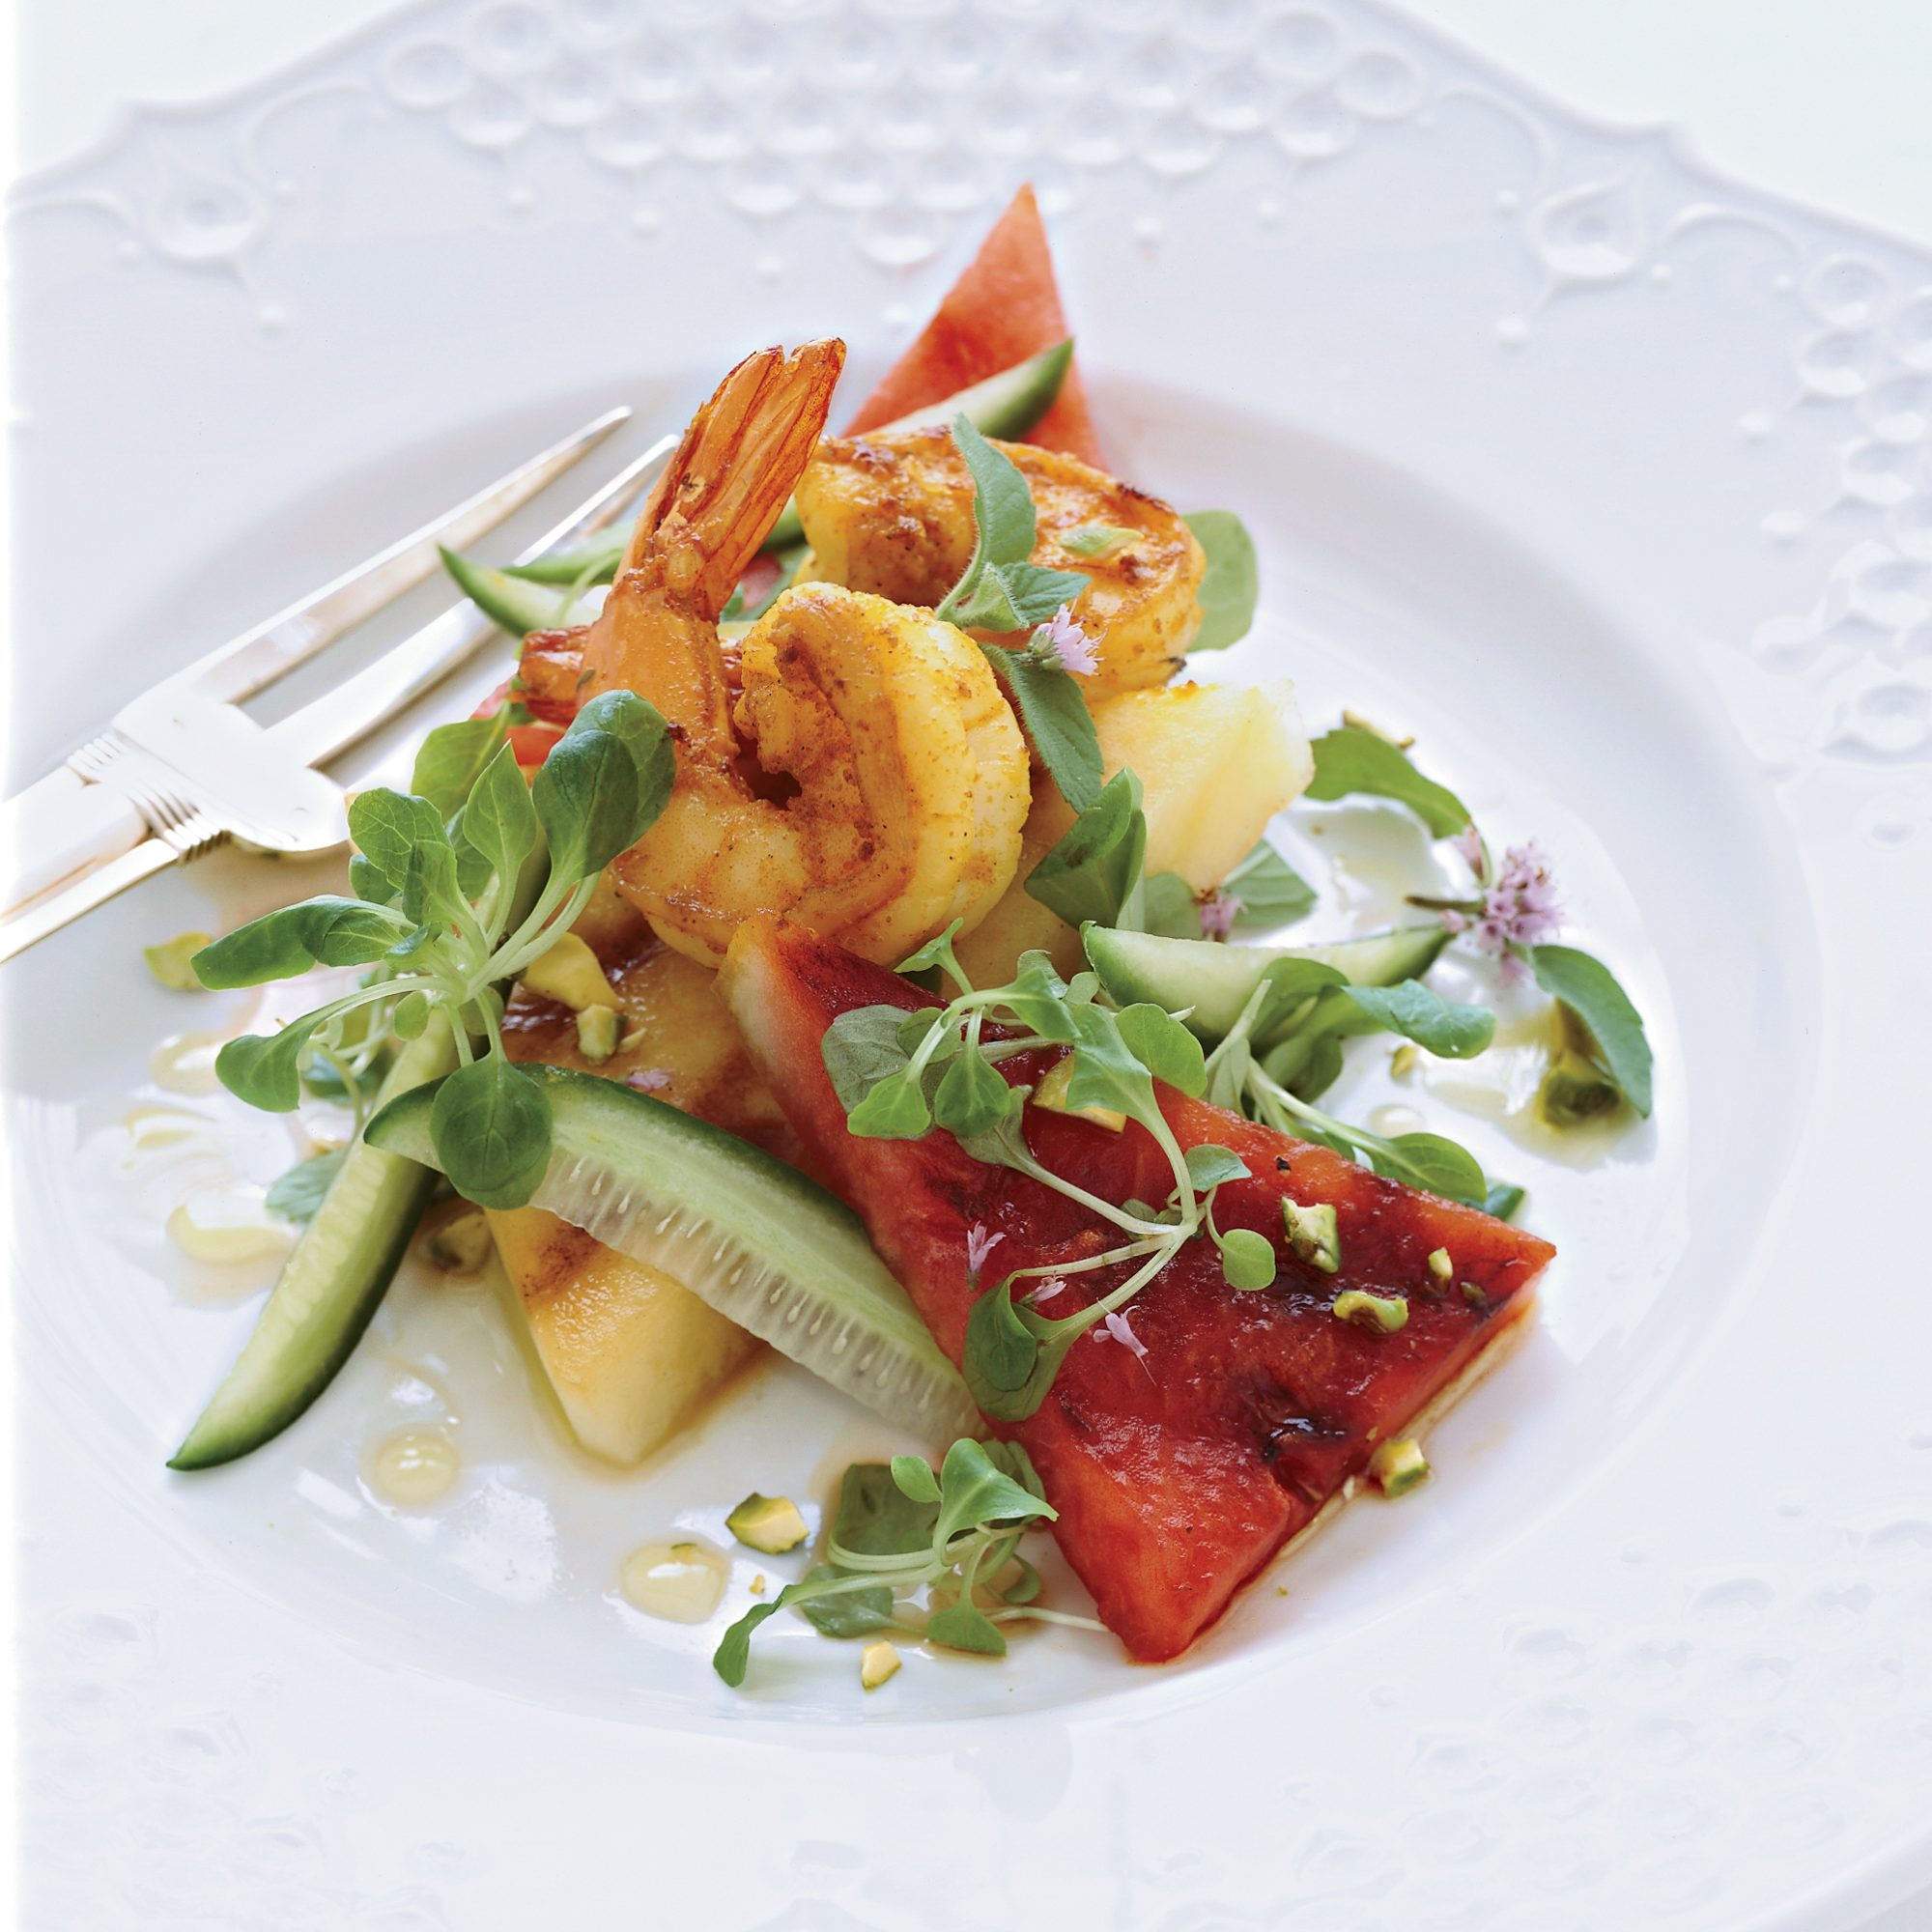 Curried-Shrimp Salad with Grilled Watermelon